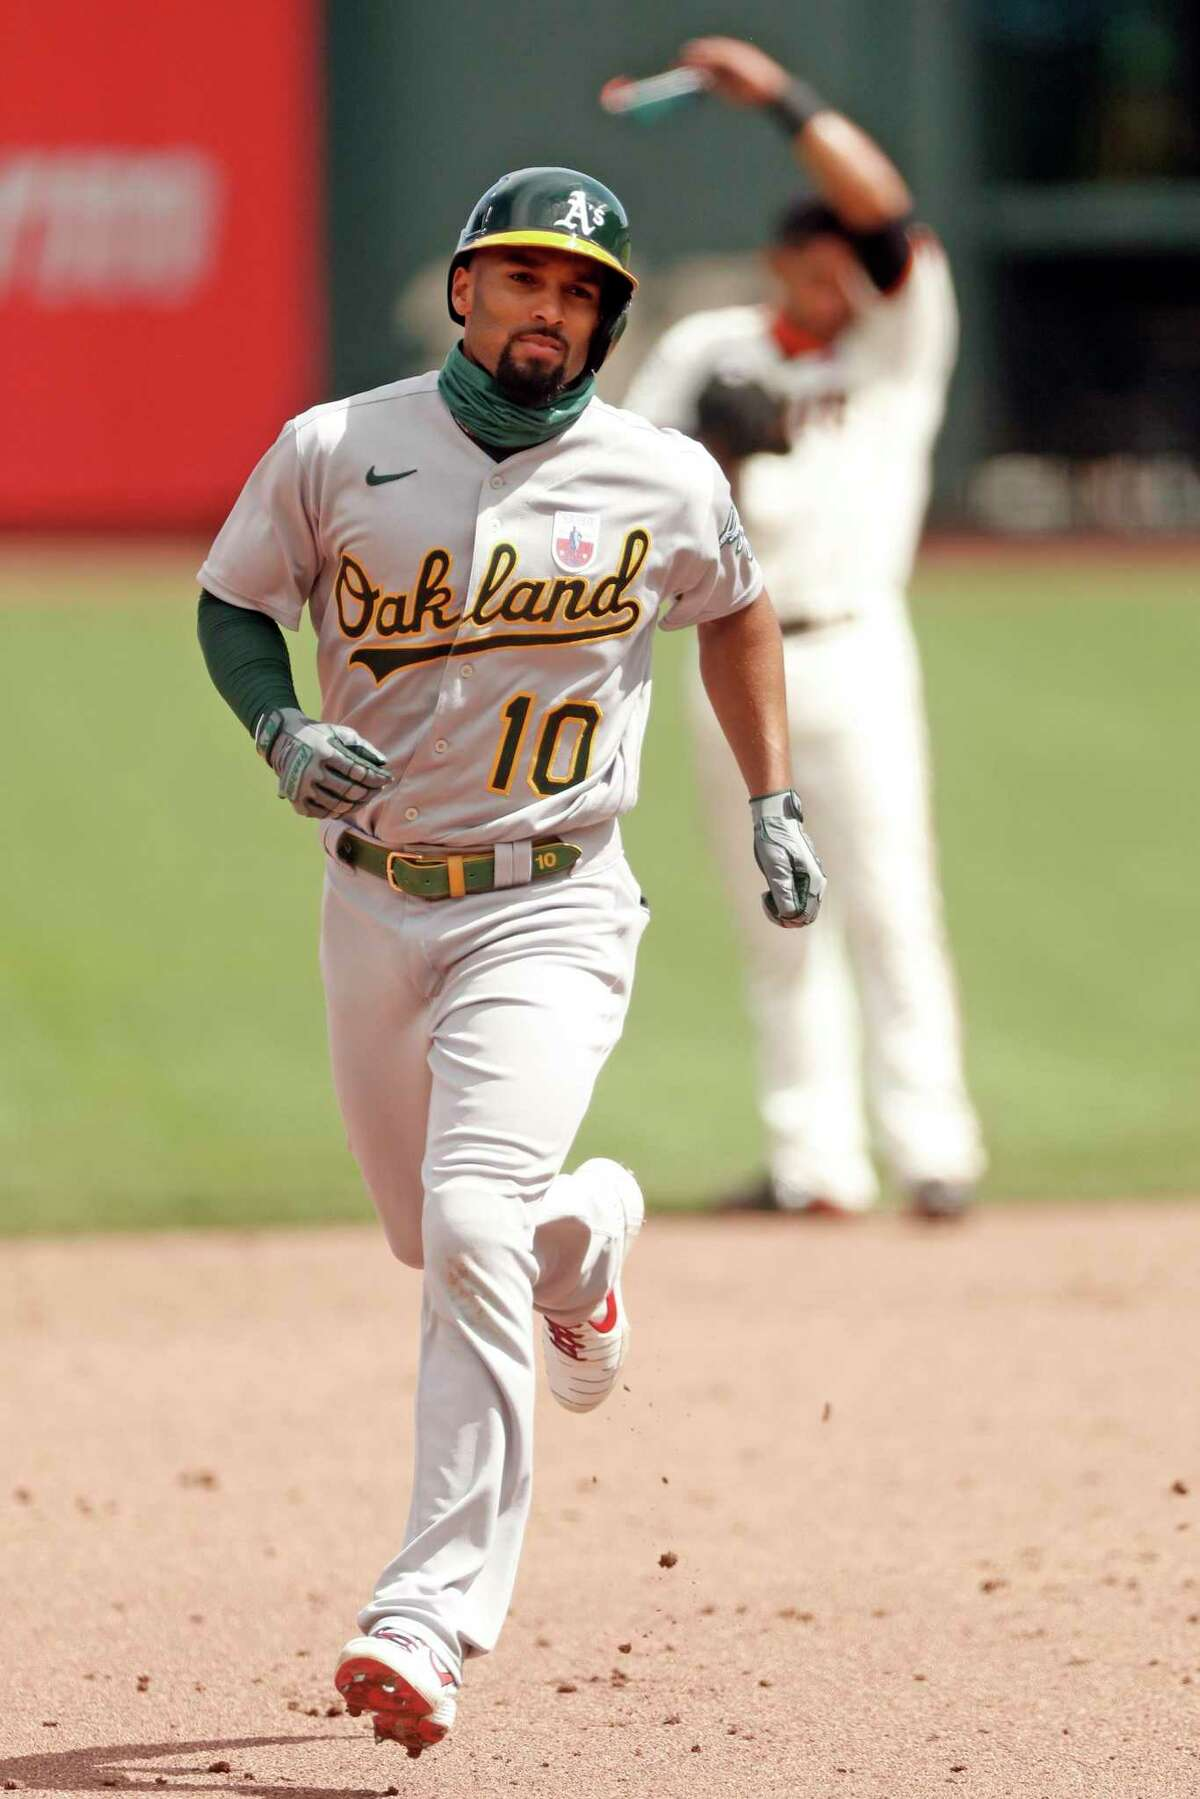 Oakland Athletics' Marcus Semien rounds the bases after his 2-run home run during A's 9-run 5th inning against San Francisco Giants during MLB game at Oracle Park in San Francisco, Calif., on Sunday, August 16, 2020.